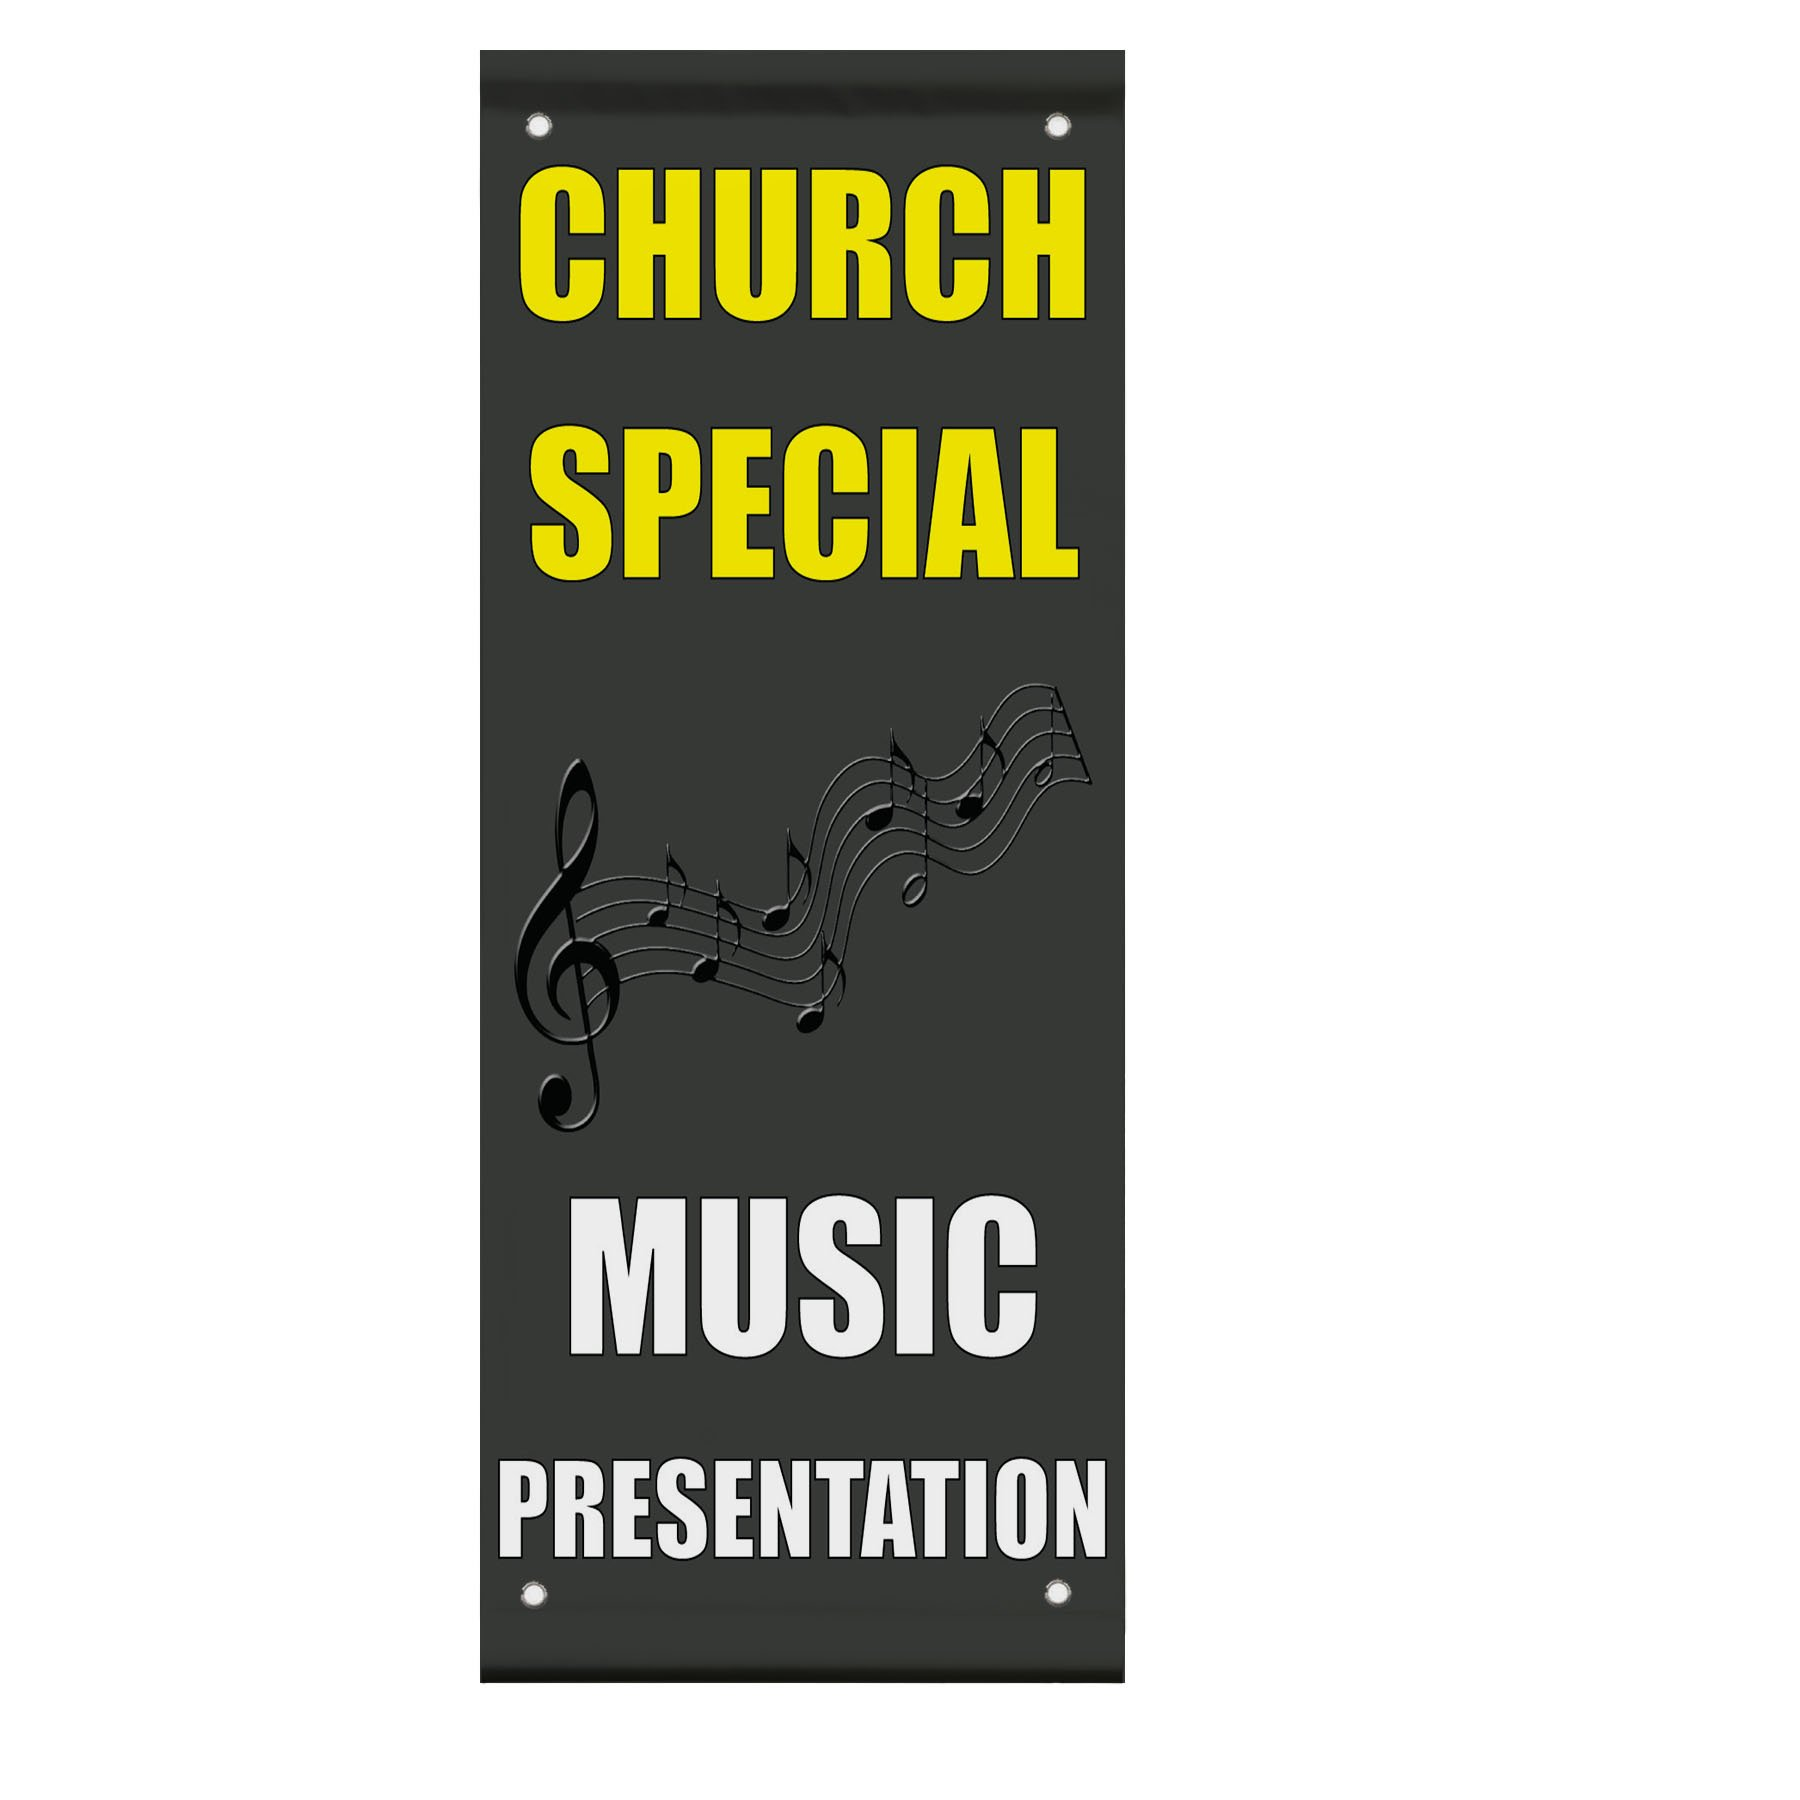 Church Special Music Presentation Double Sided Vertical Pole Banner Sign 24 in x 36 in w/ Wall Bracket by Fastasticdeals